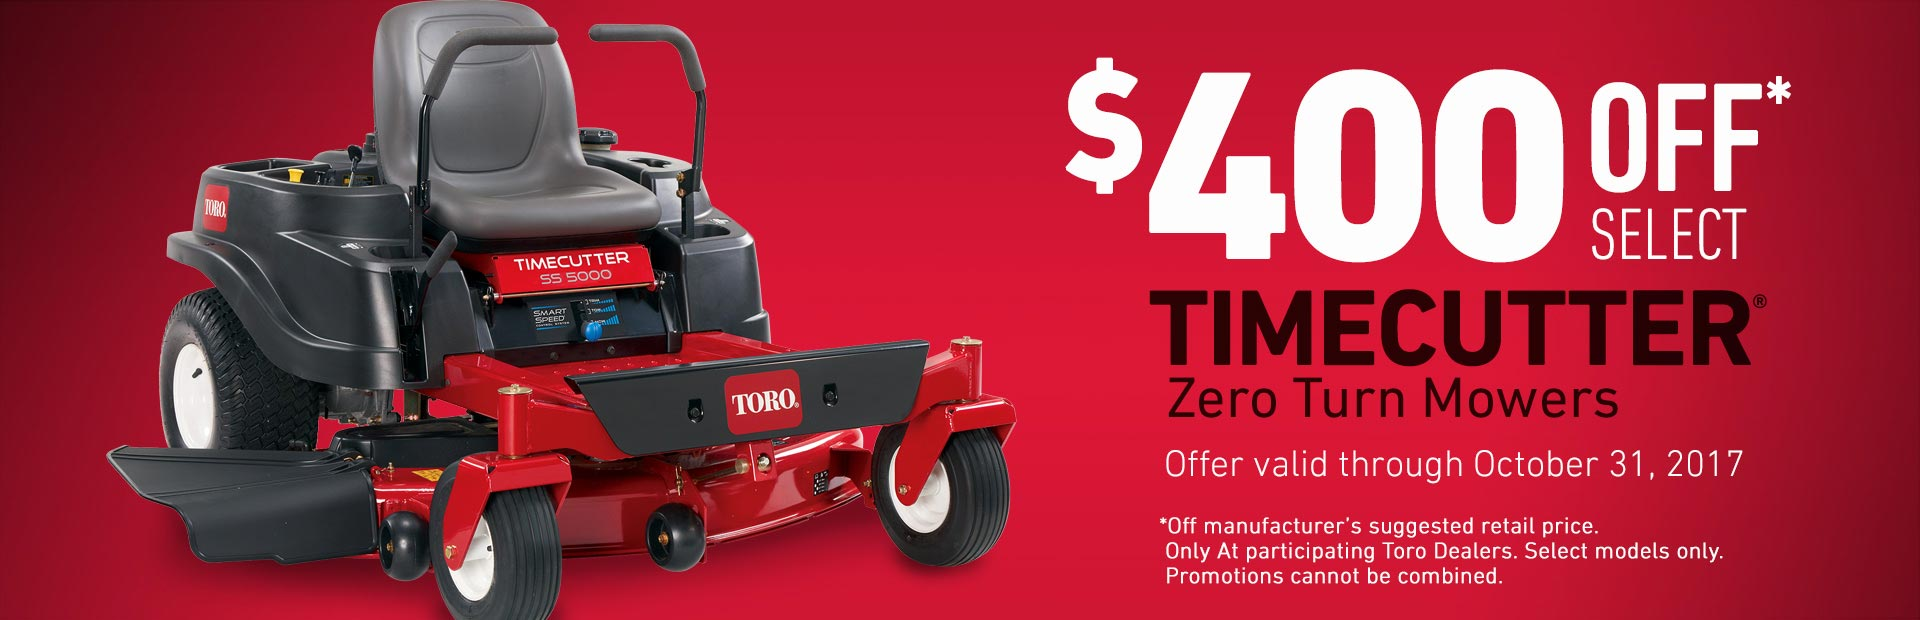 $400 OFF Z Select TimeCutter SS5000 Mowers